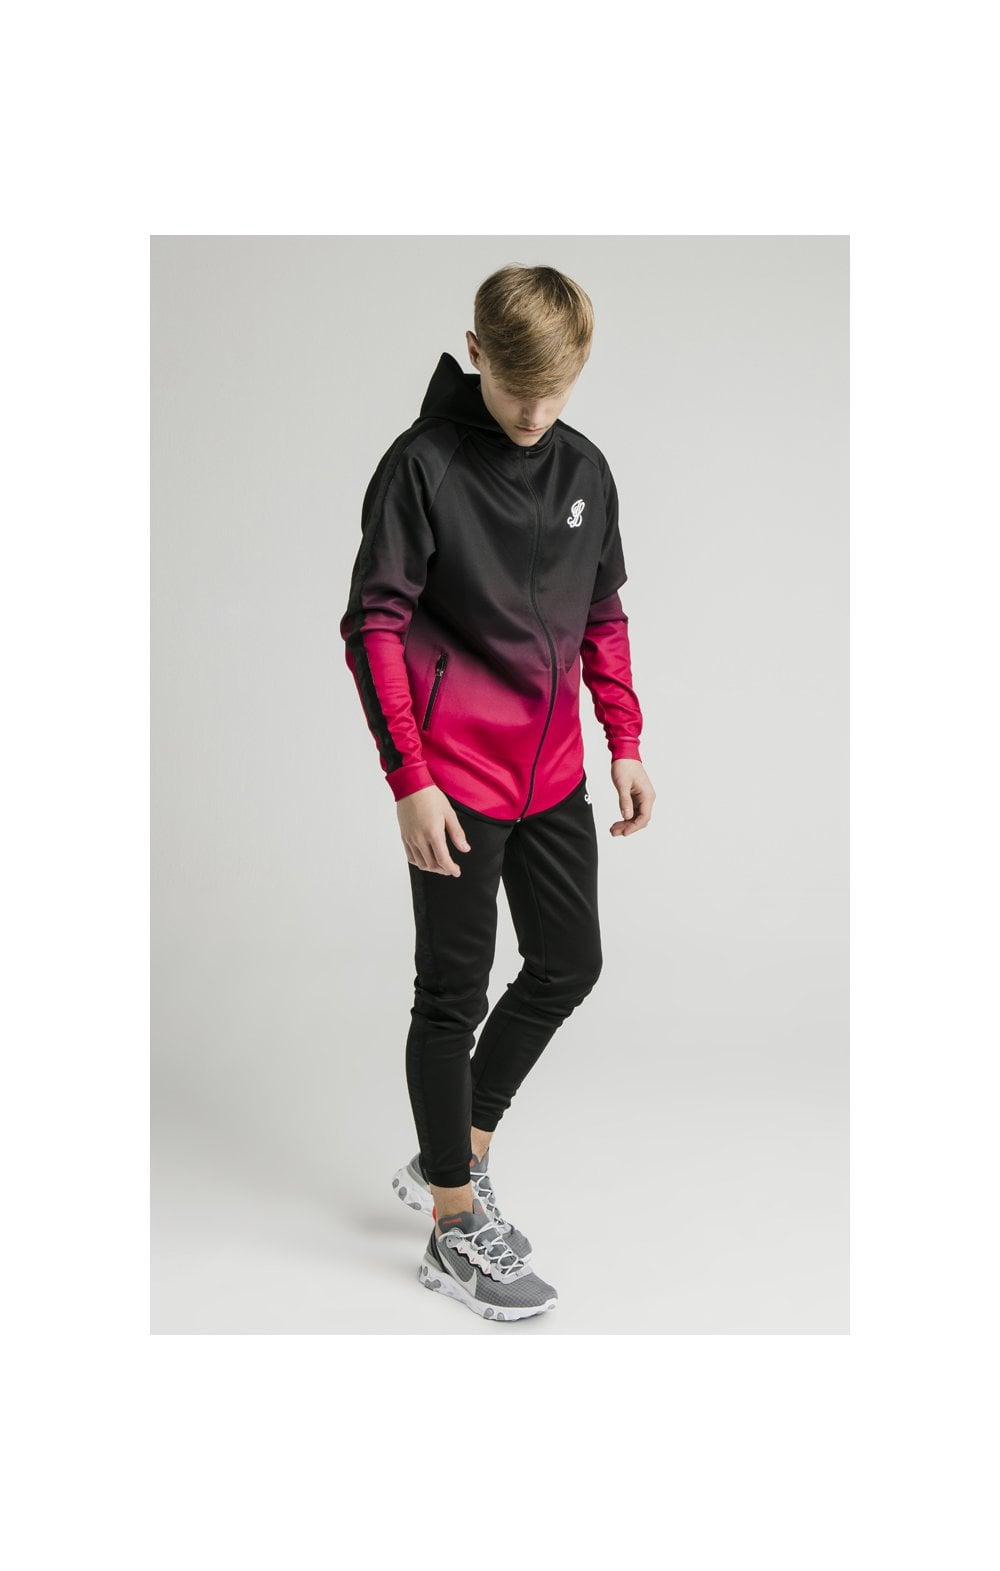 Load image into Gallery viewer, Illusive London Athlete Zip Through Fade Hoodie - Black & Pink (5)